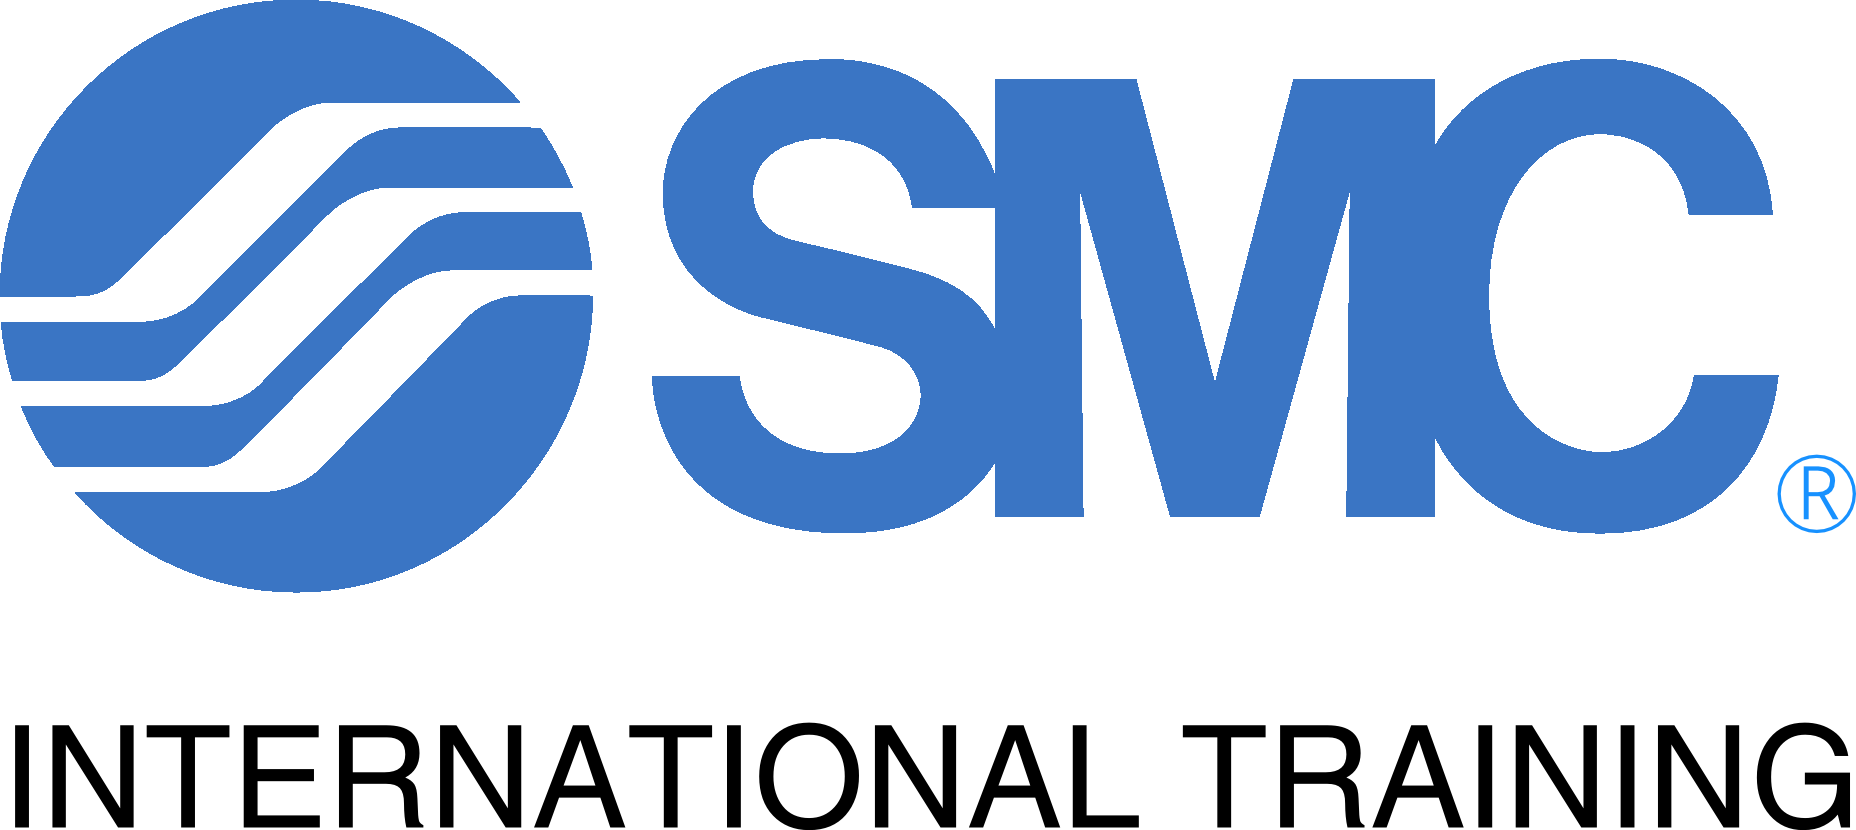 SMC International Training - La division didactique de SMC Corporation